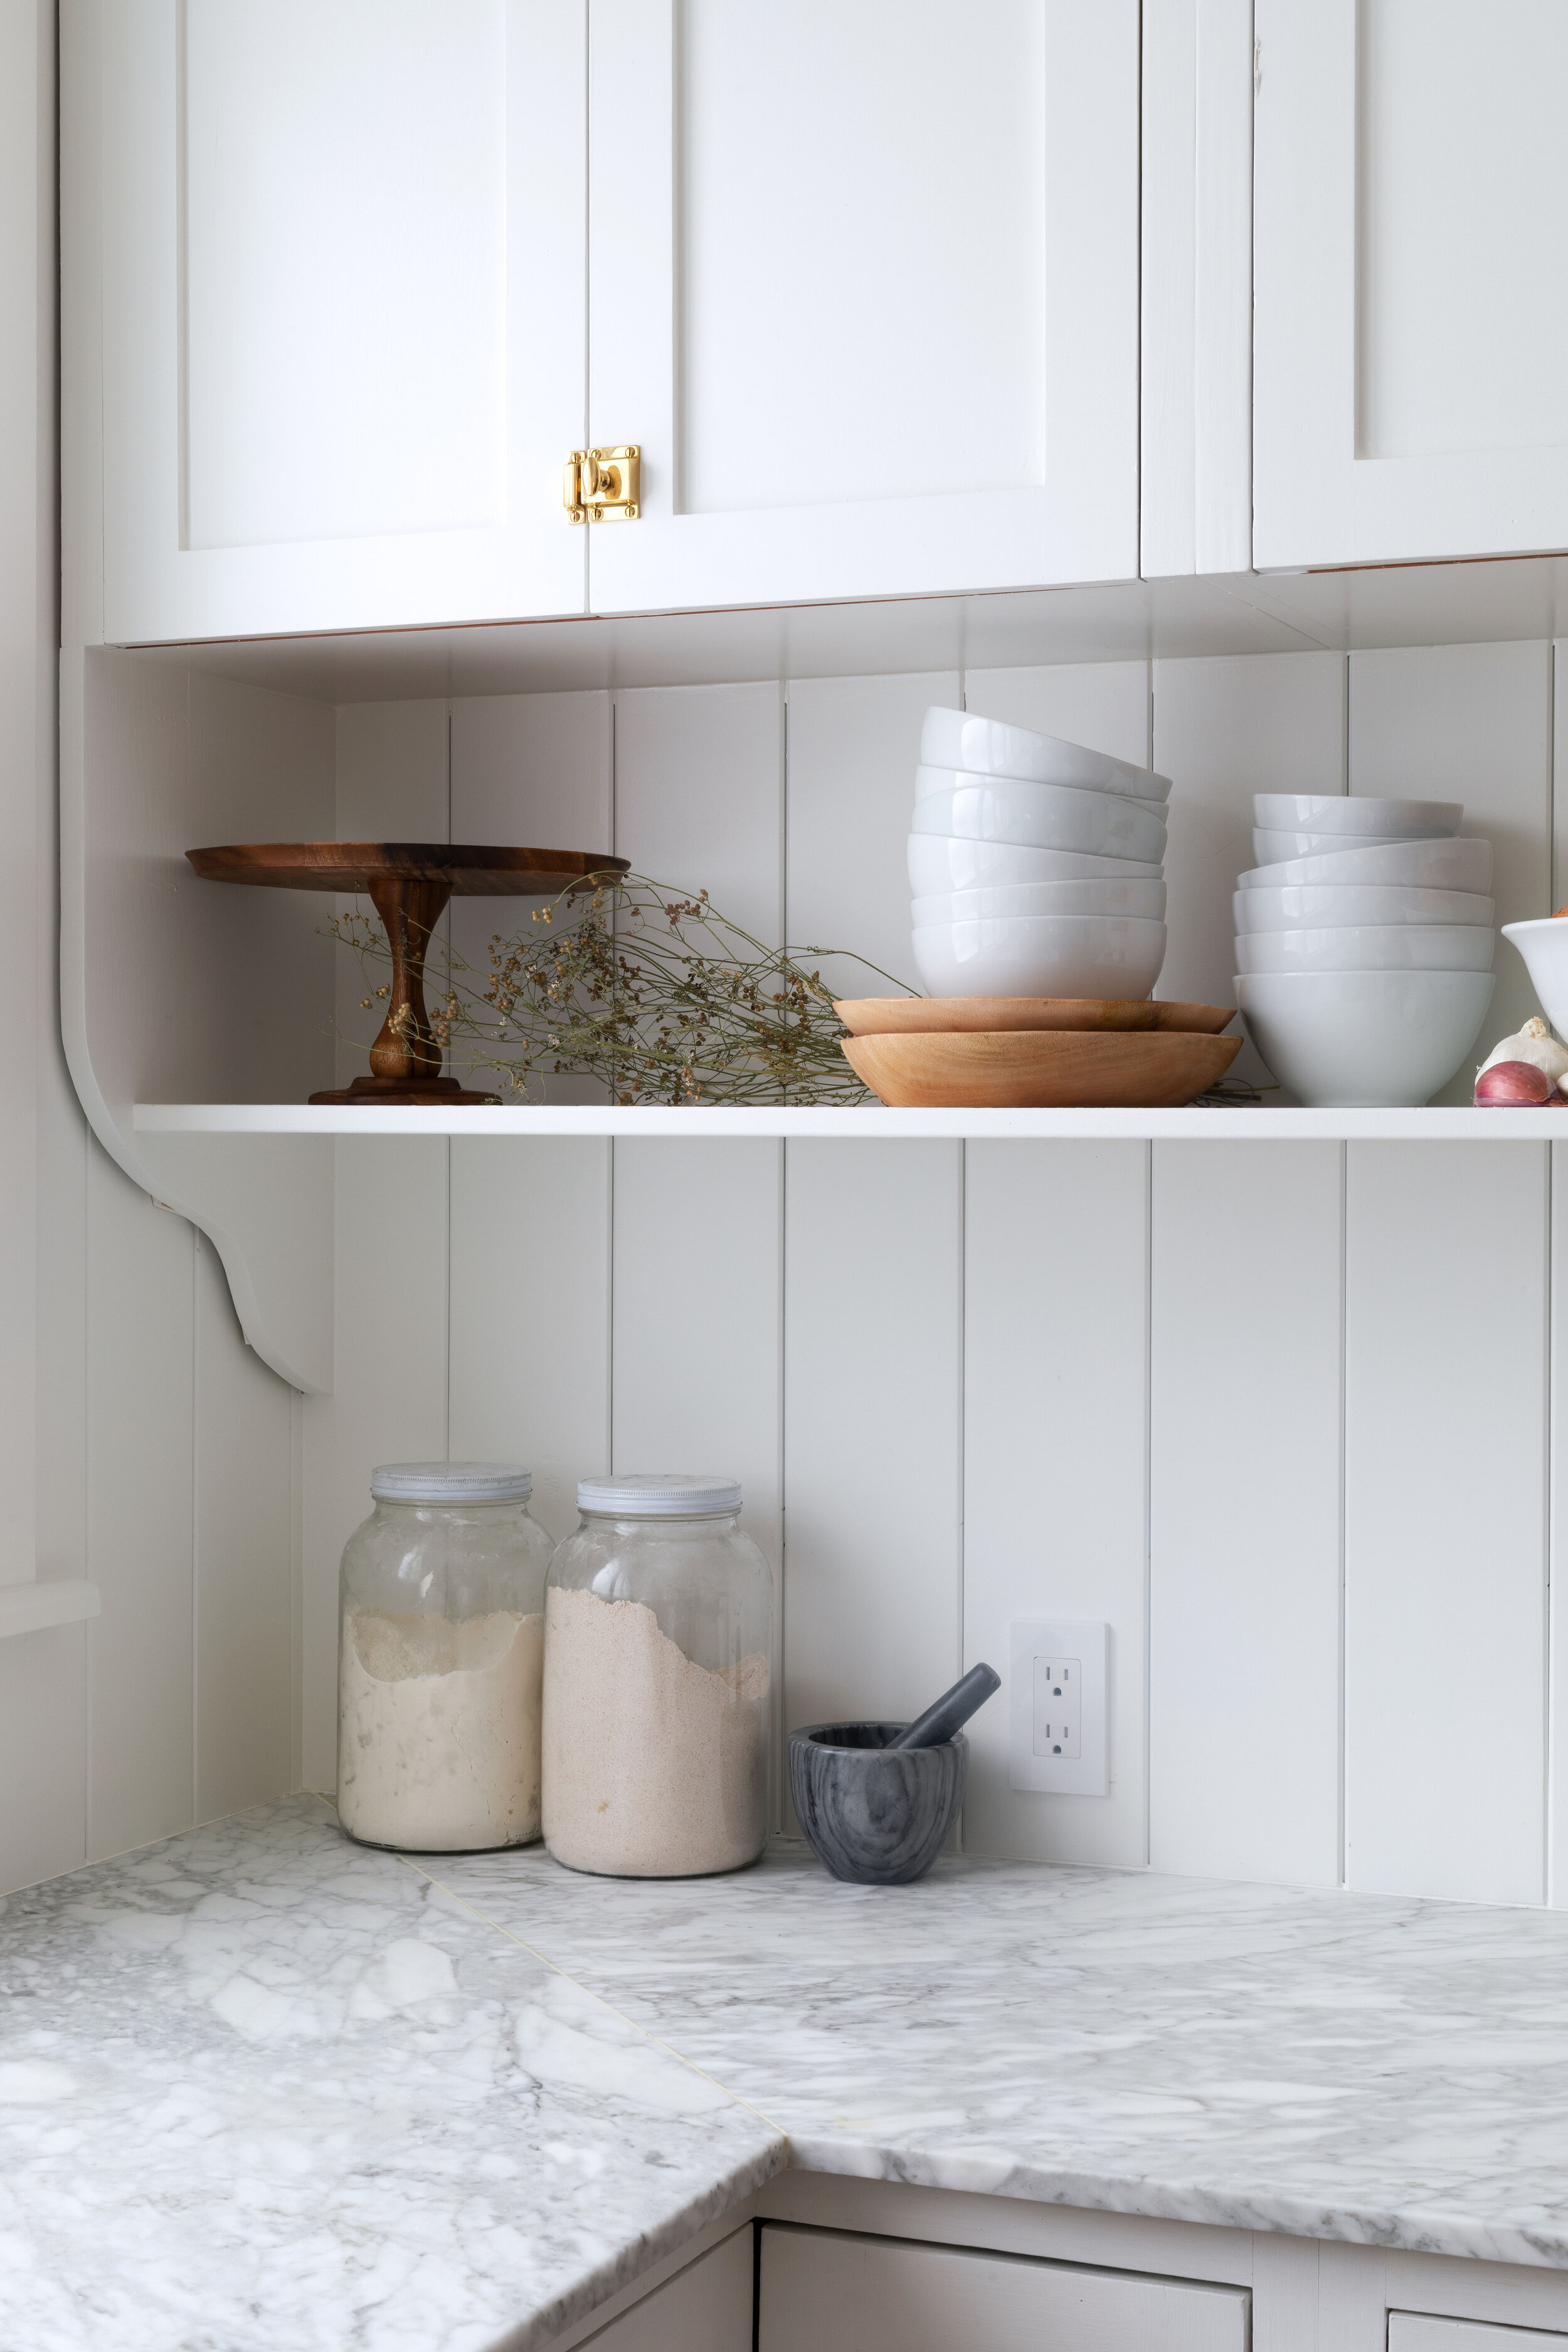 The Grit and Polish - Farmhouse Country Kitchen Reveal 3.0 24 web.jpg